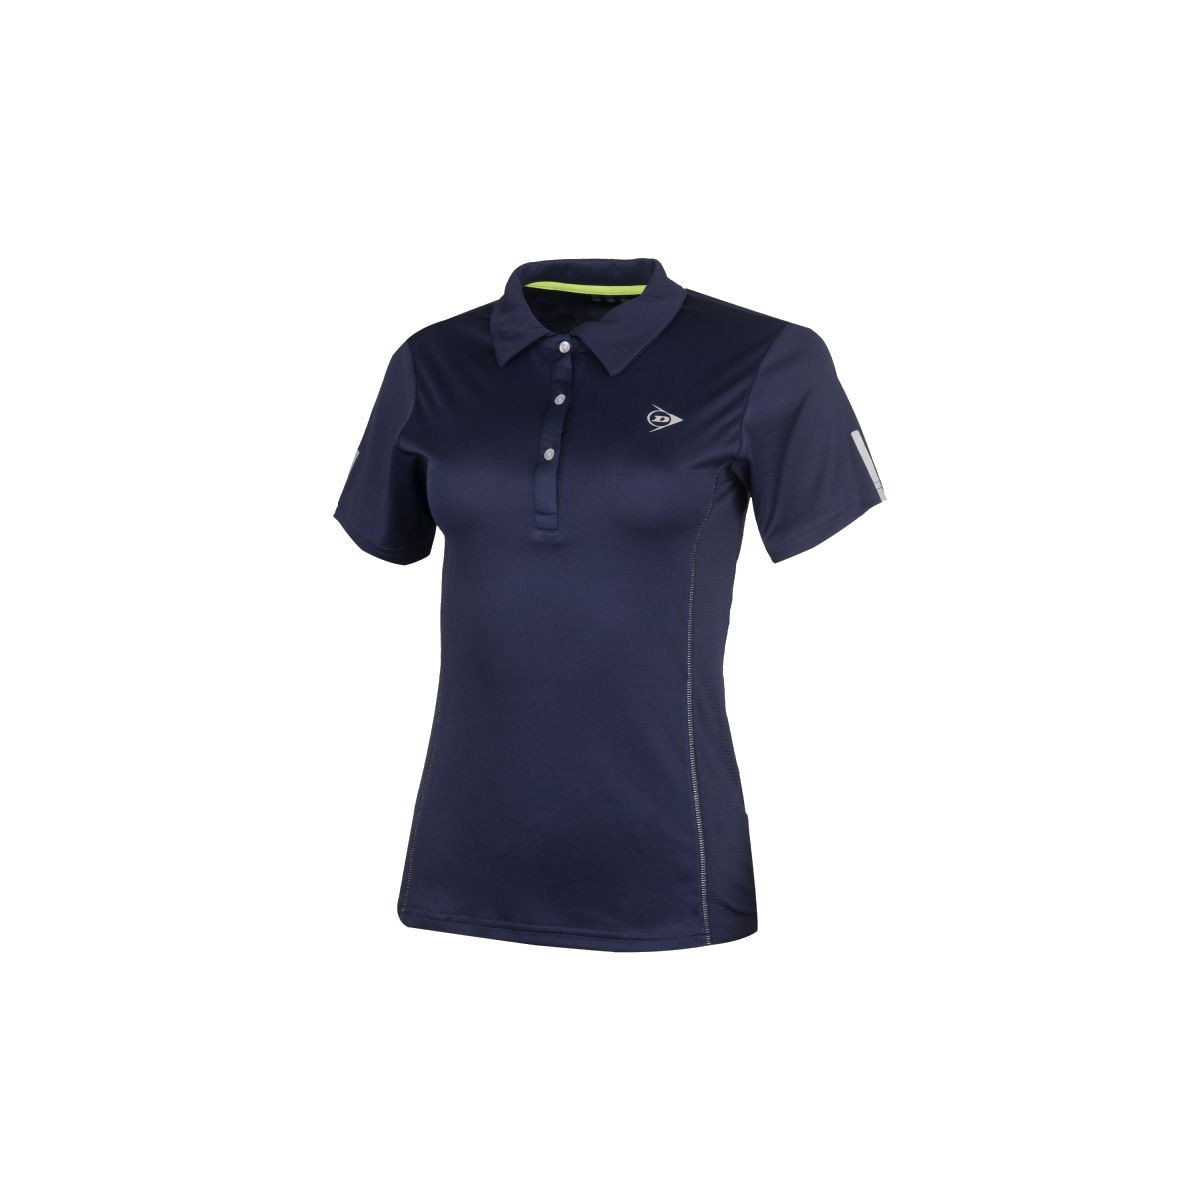 Dunlop Women's Club Collection Polo Tennis Shirt (Navy)